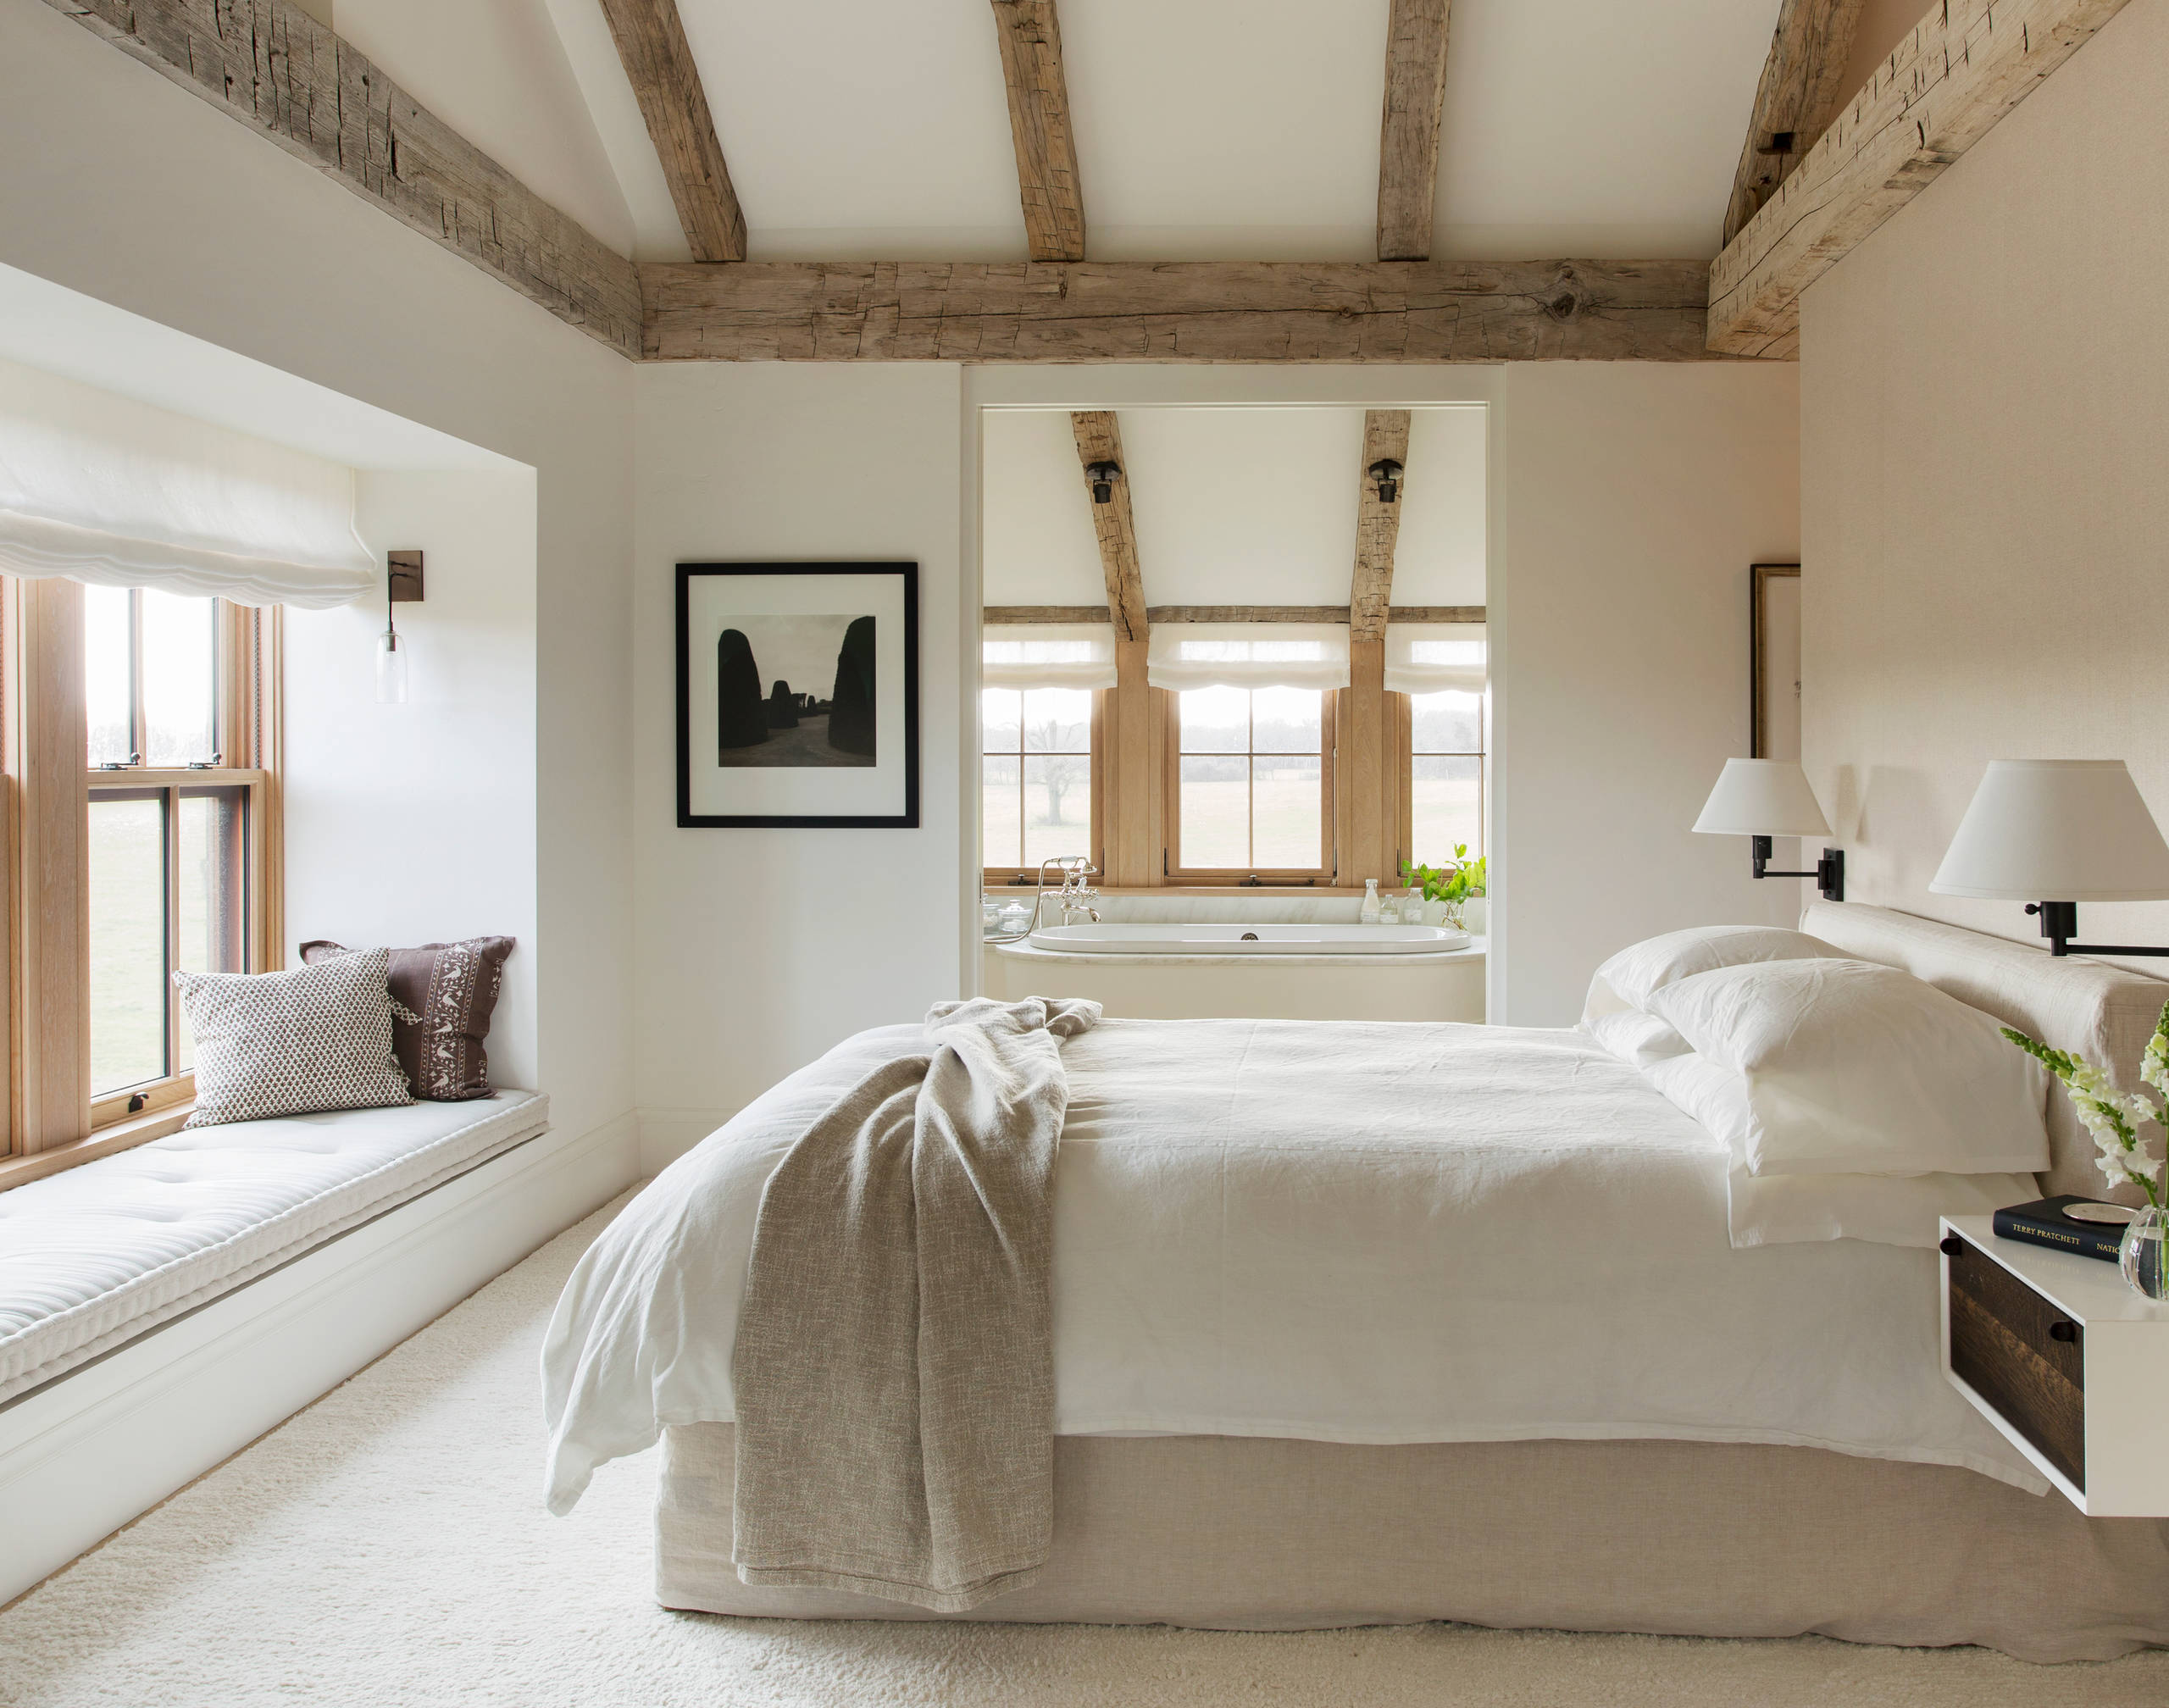 75 Beautiful Farmhouse Bedroom Pictures Ideas November 2020 Houzz